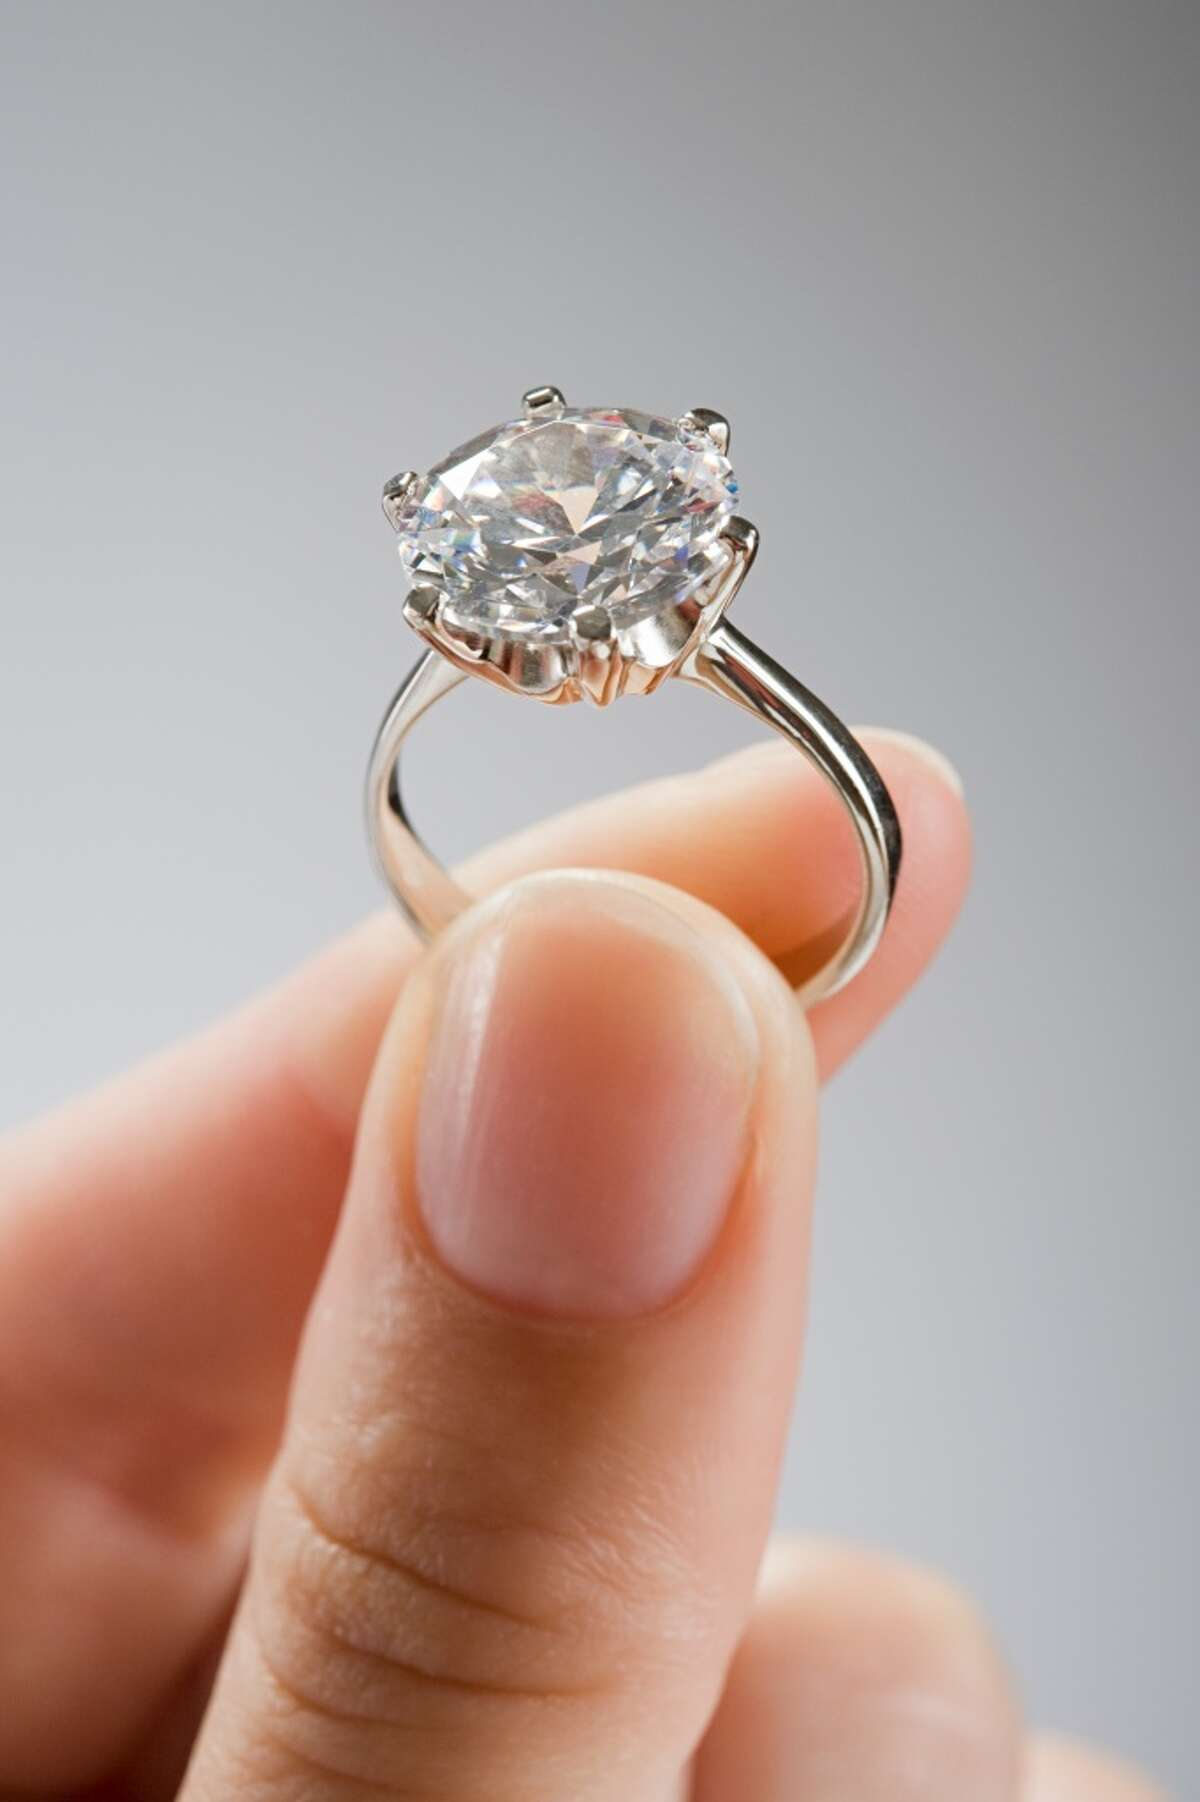 Couples in Alabama spend an average of $8,062 on engagement rings.